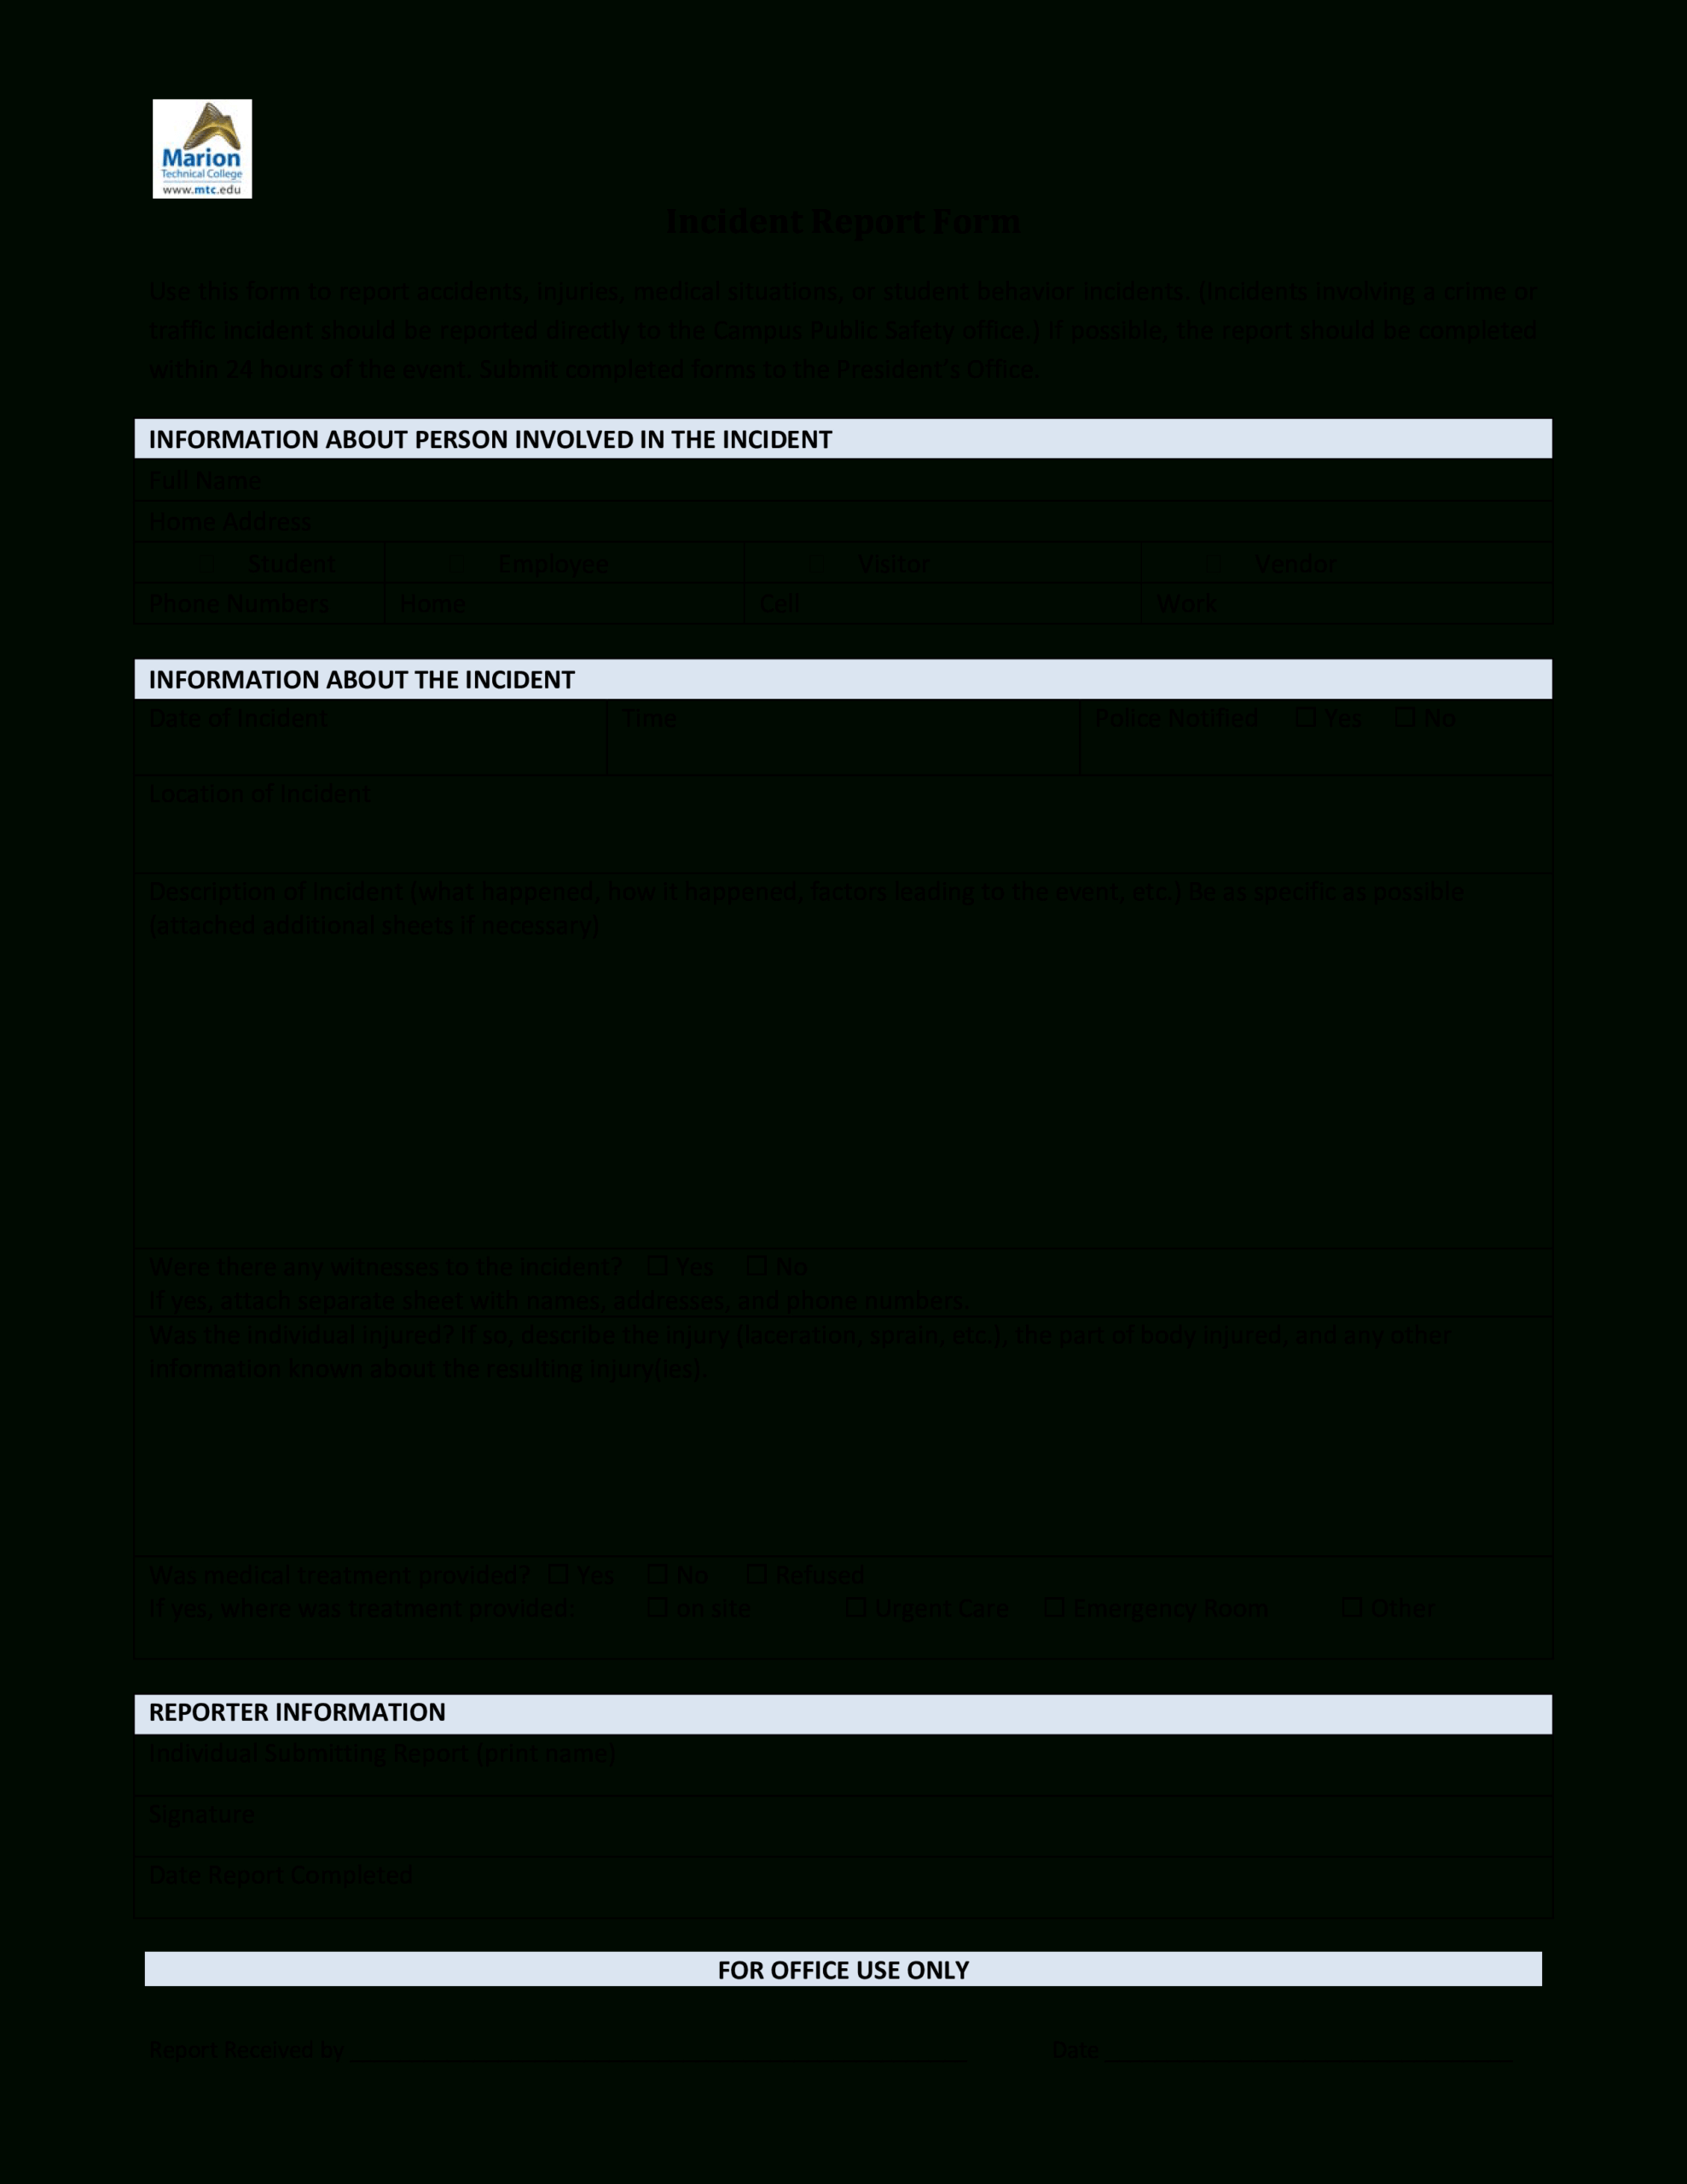 Blank Incident Report Form | Templates At Within Office Incident Report Template